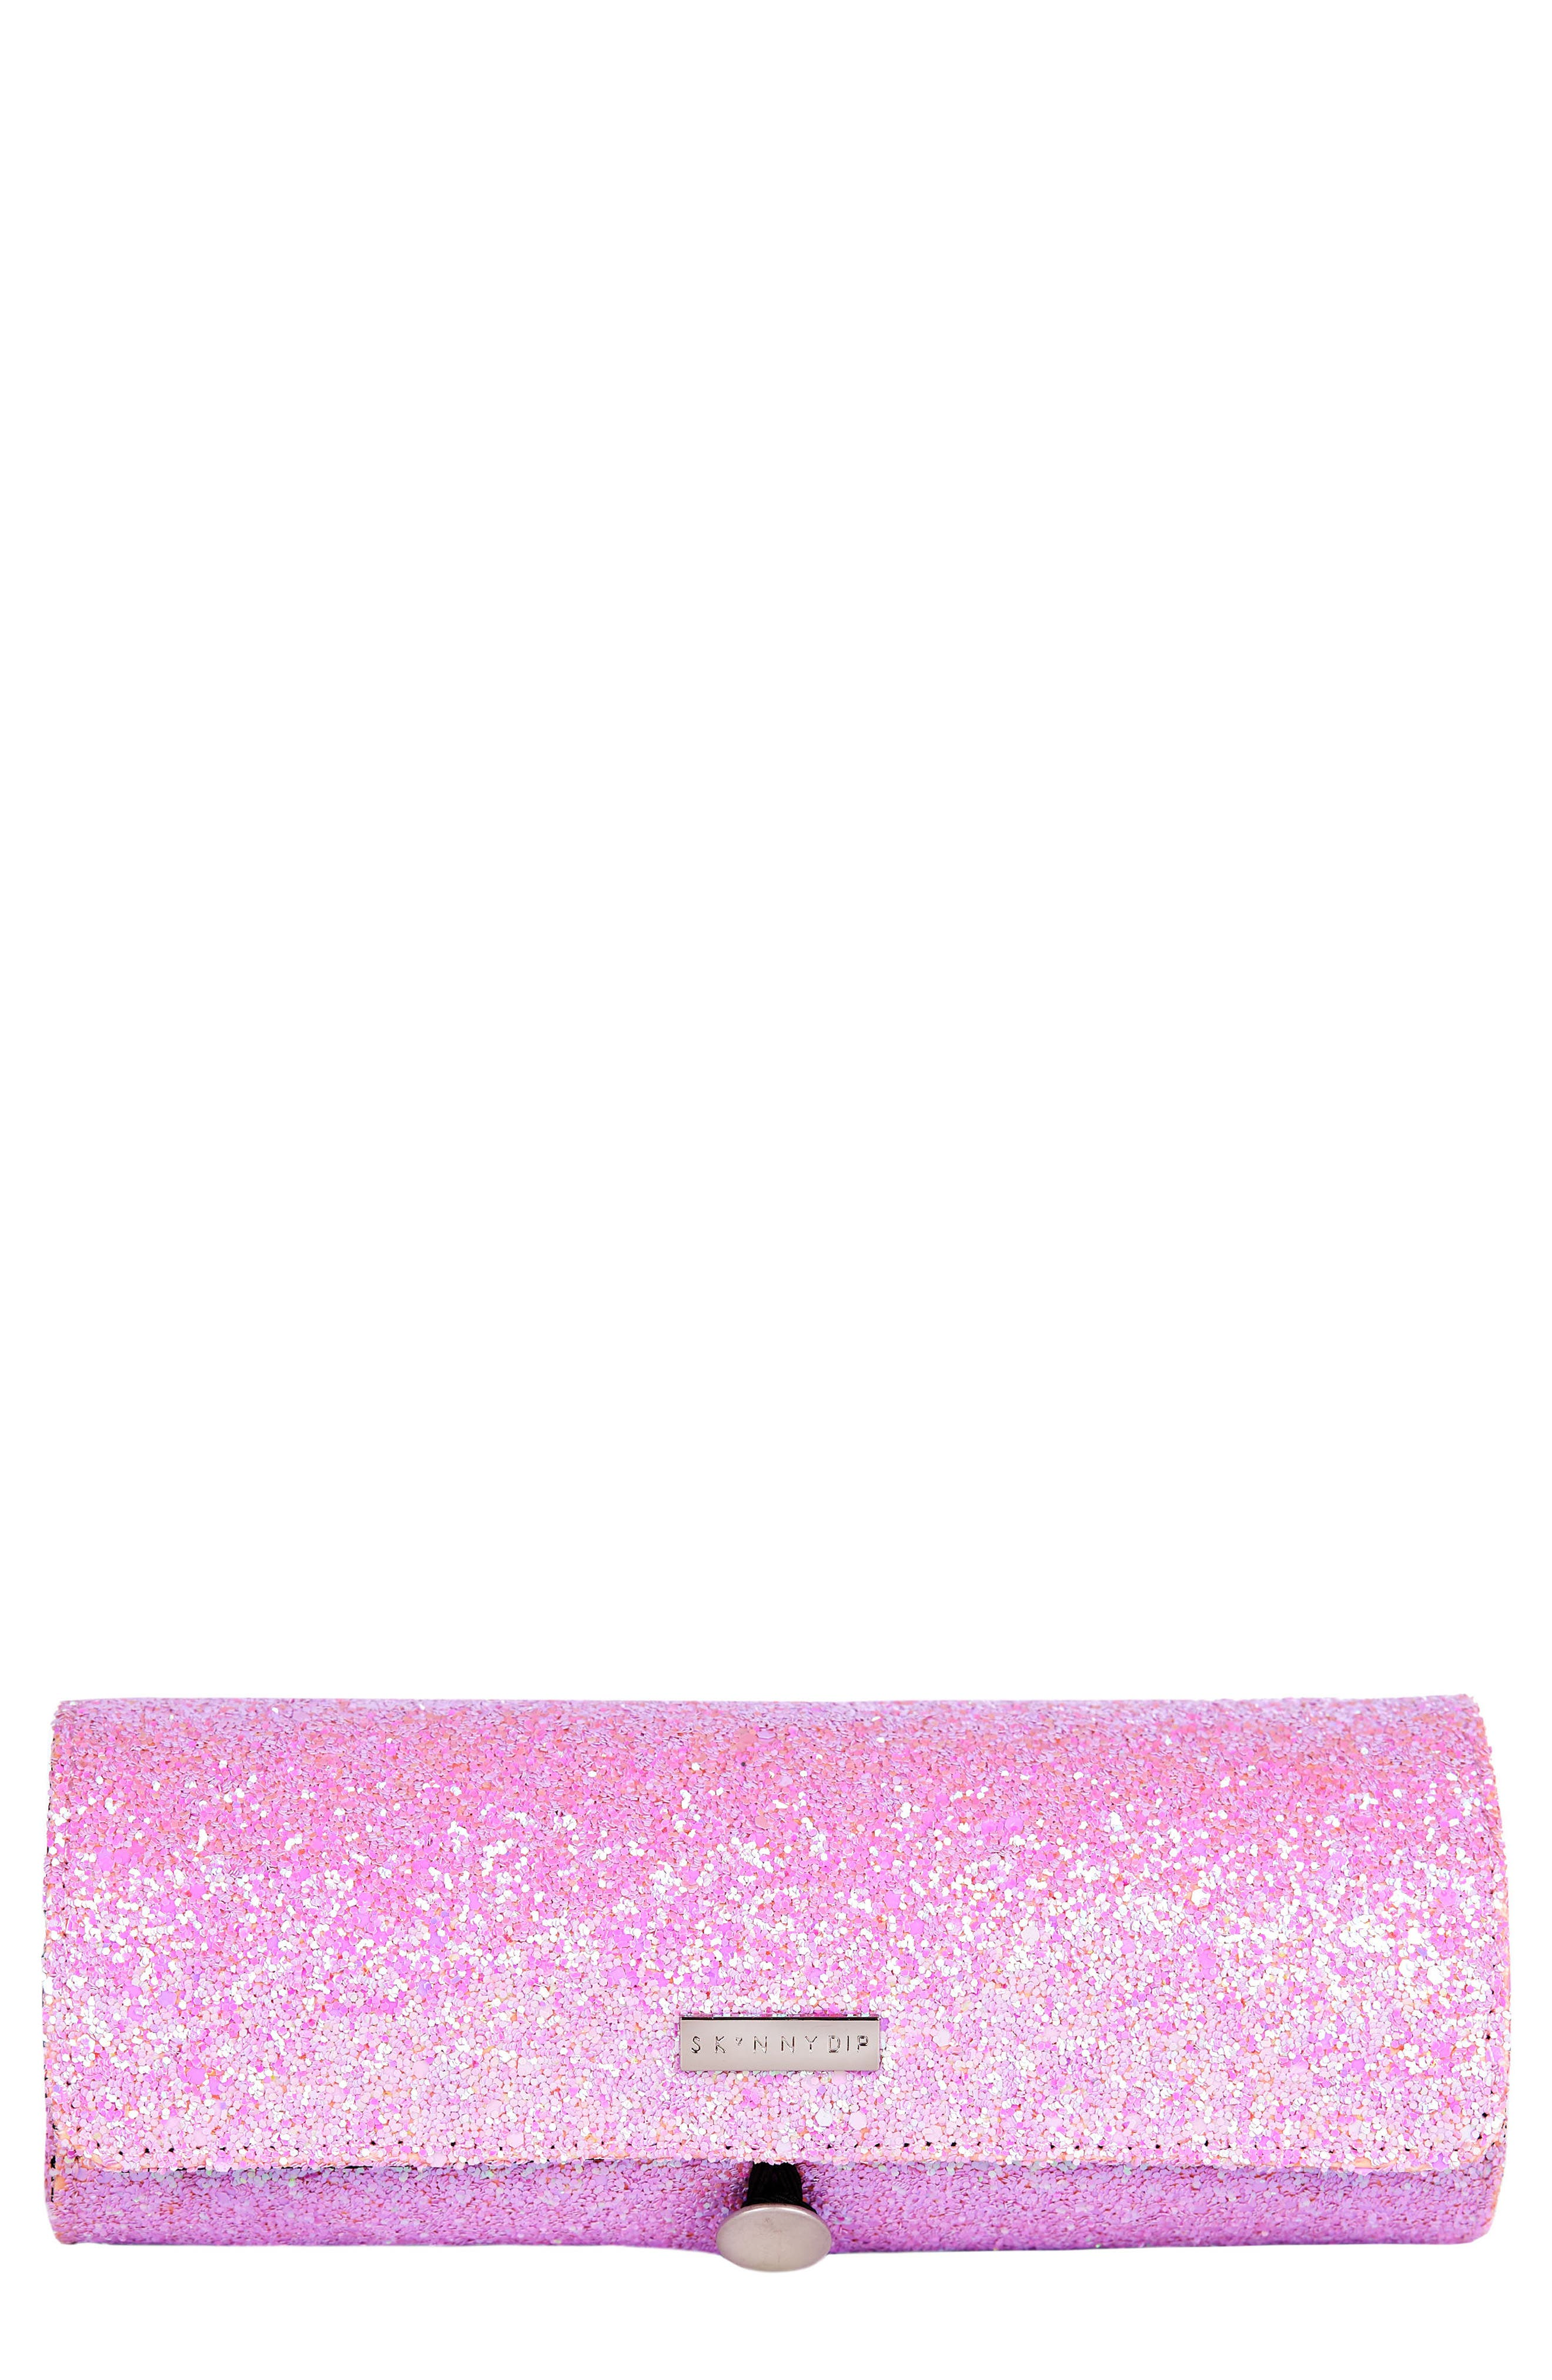 Skinny Dip Pink Glitsy Brush Roll,                         Main,                         color, No Color